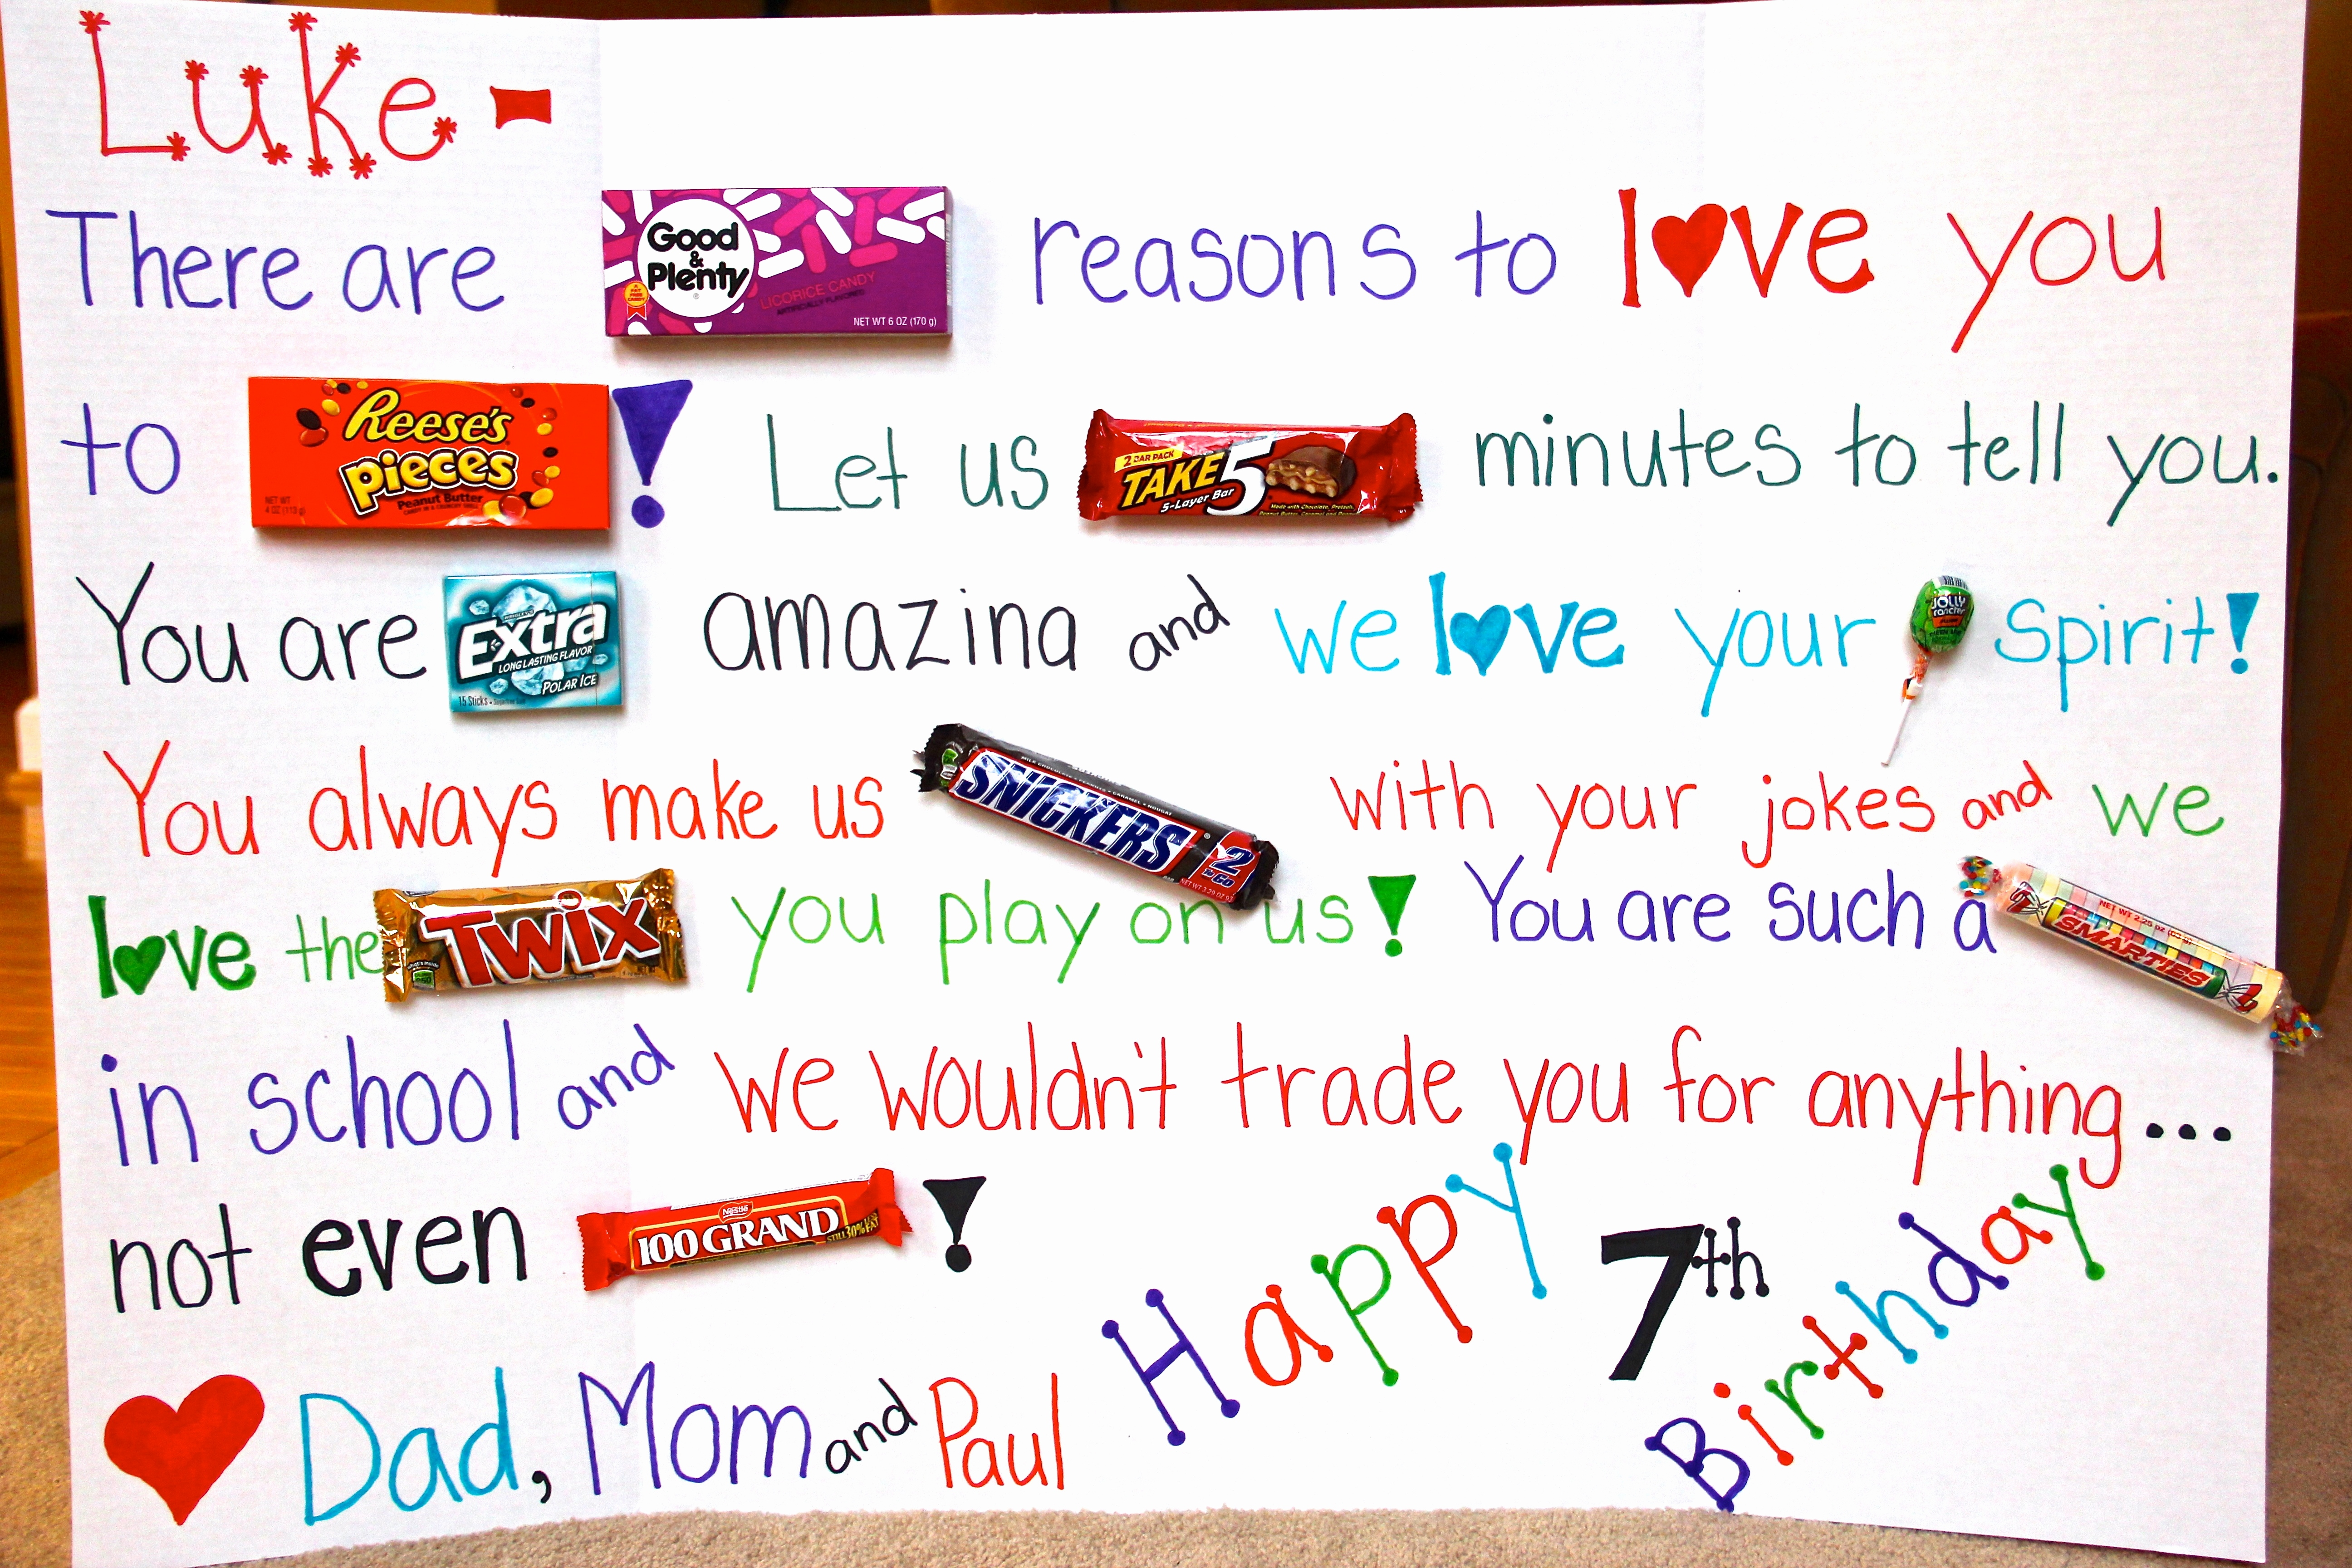 birthday candy poster for best friend ; 21st-birthday-card-messages-beautiful-happy-birthday-candy-poster-for-the-kids-pinterest-of-21st-birthday-card-messages